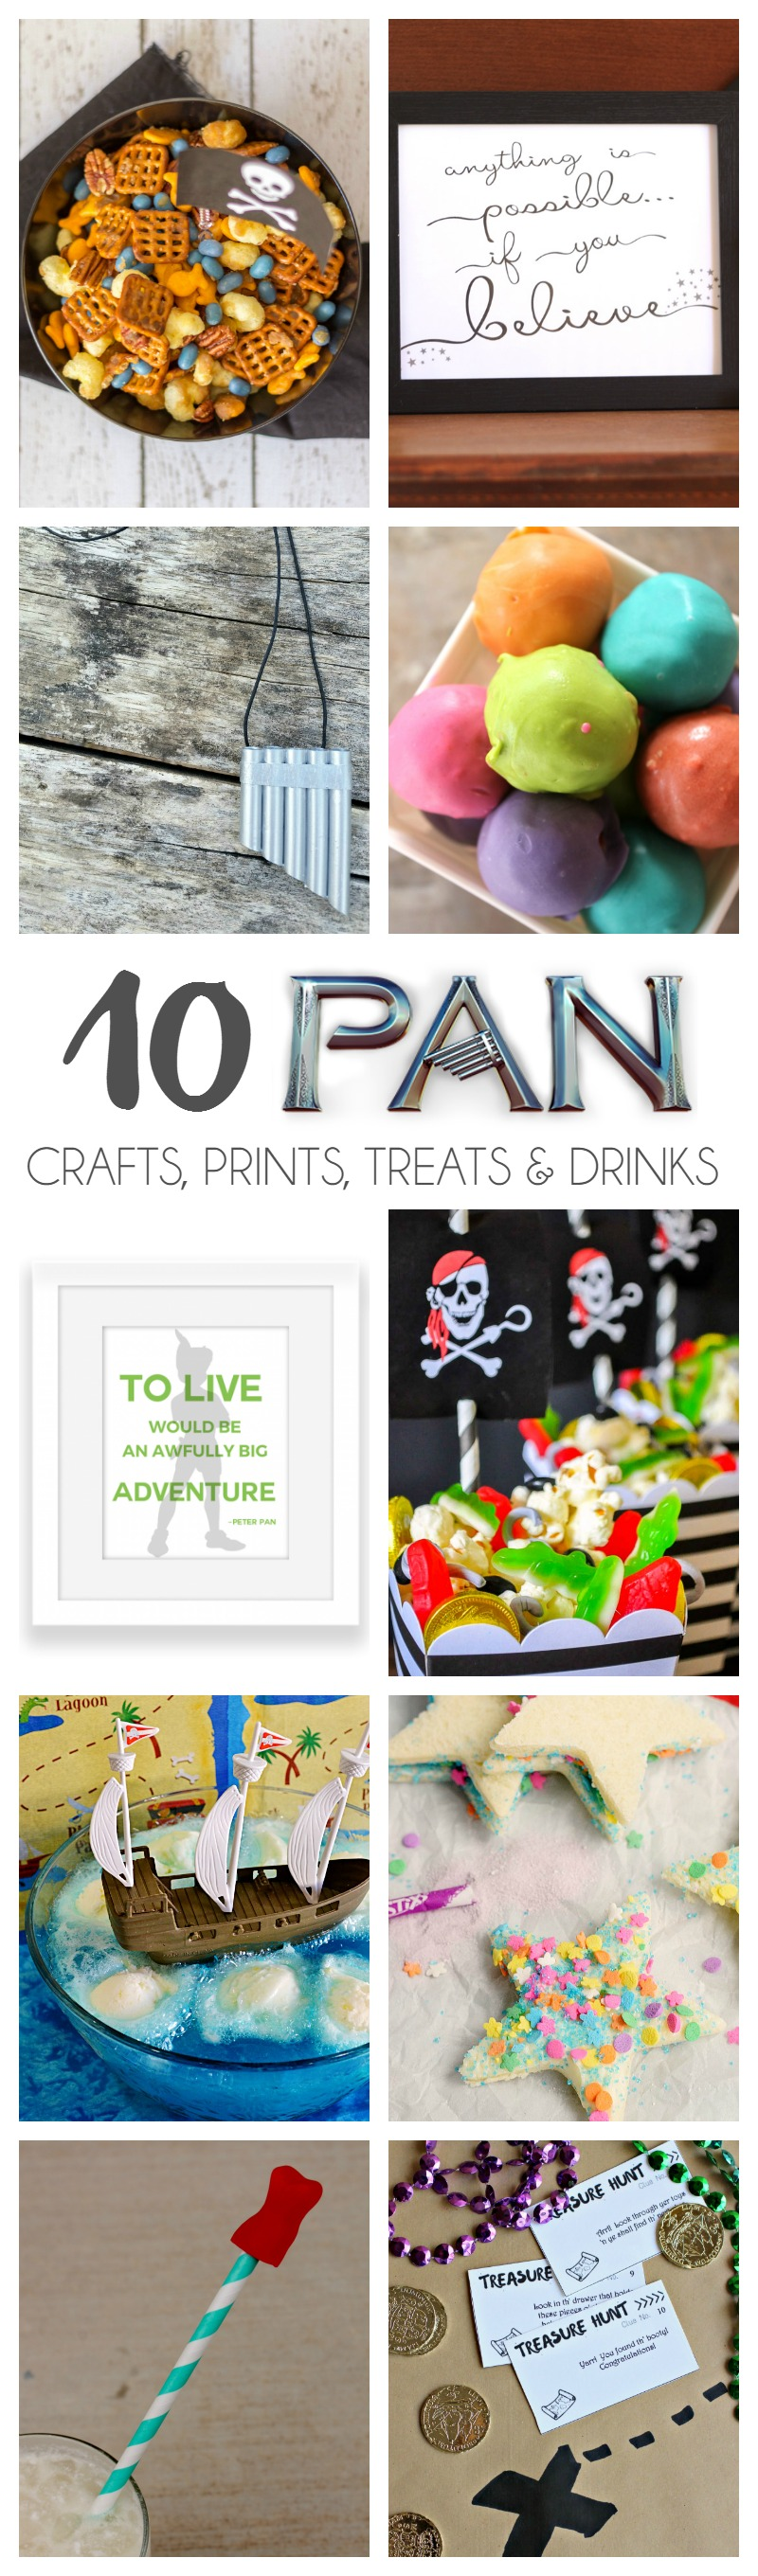 10 Pan Crafts, Prints, Treats & Drinks | Bread Booze Bacon